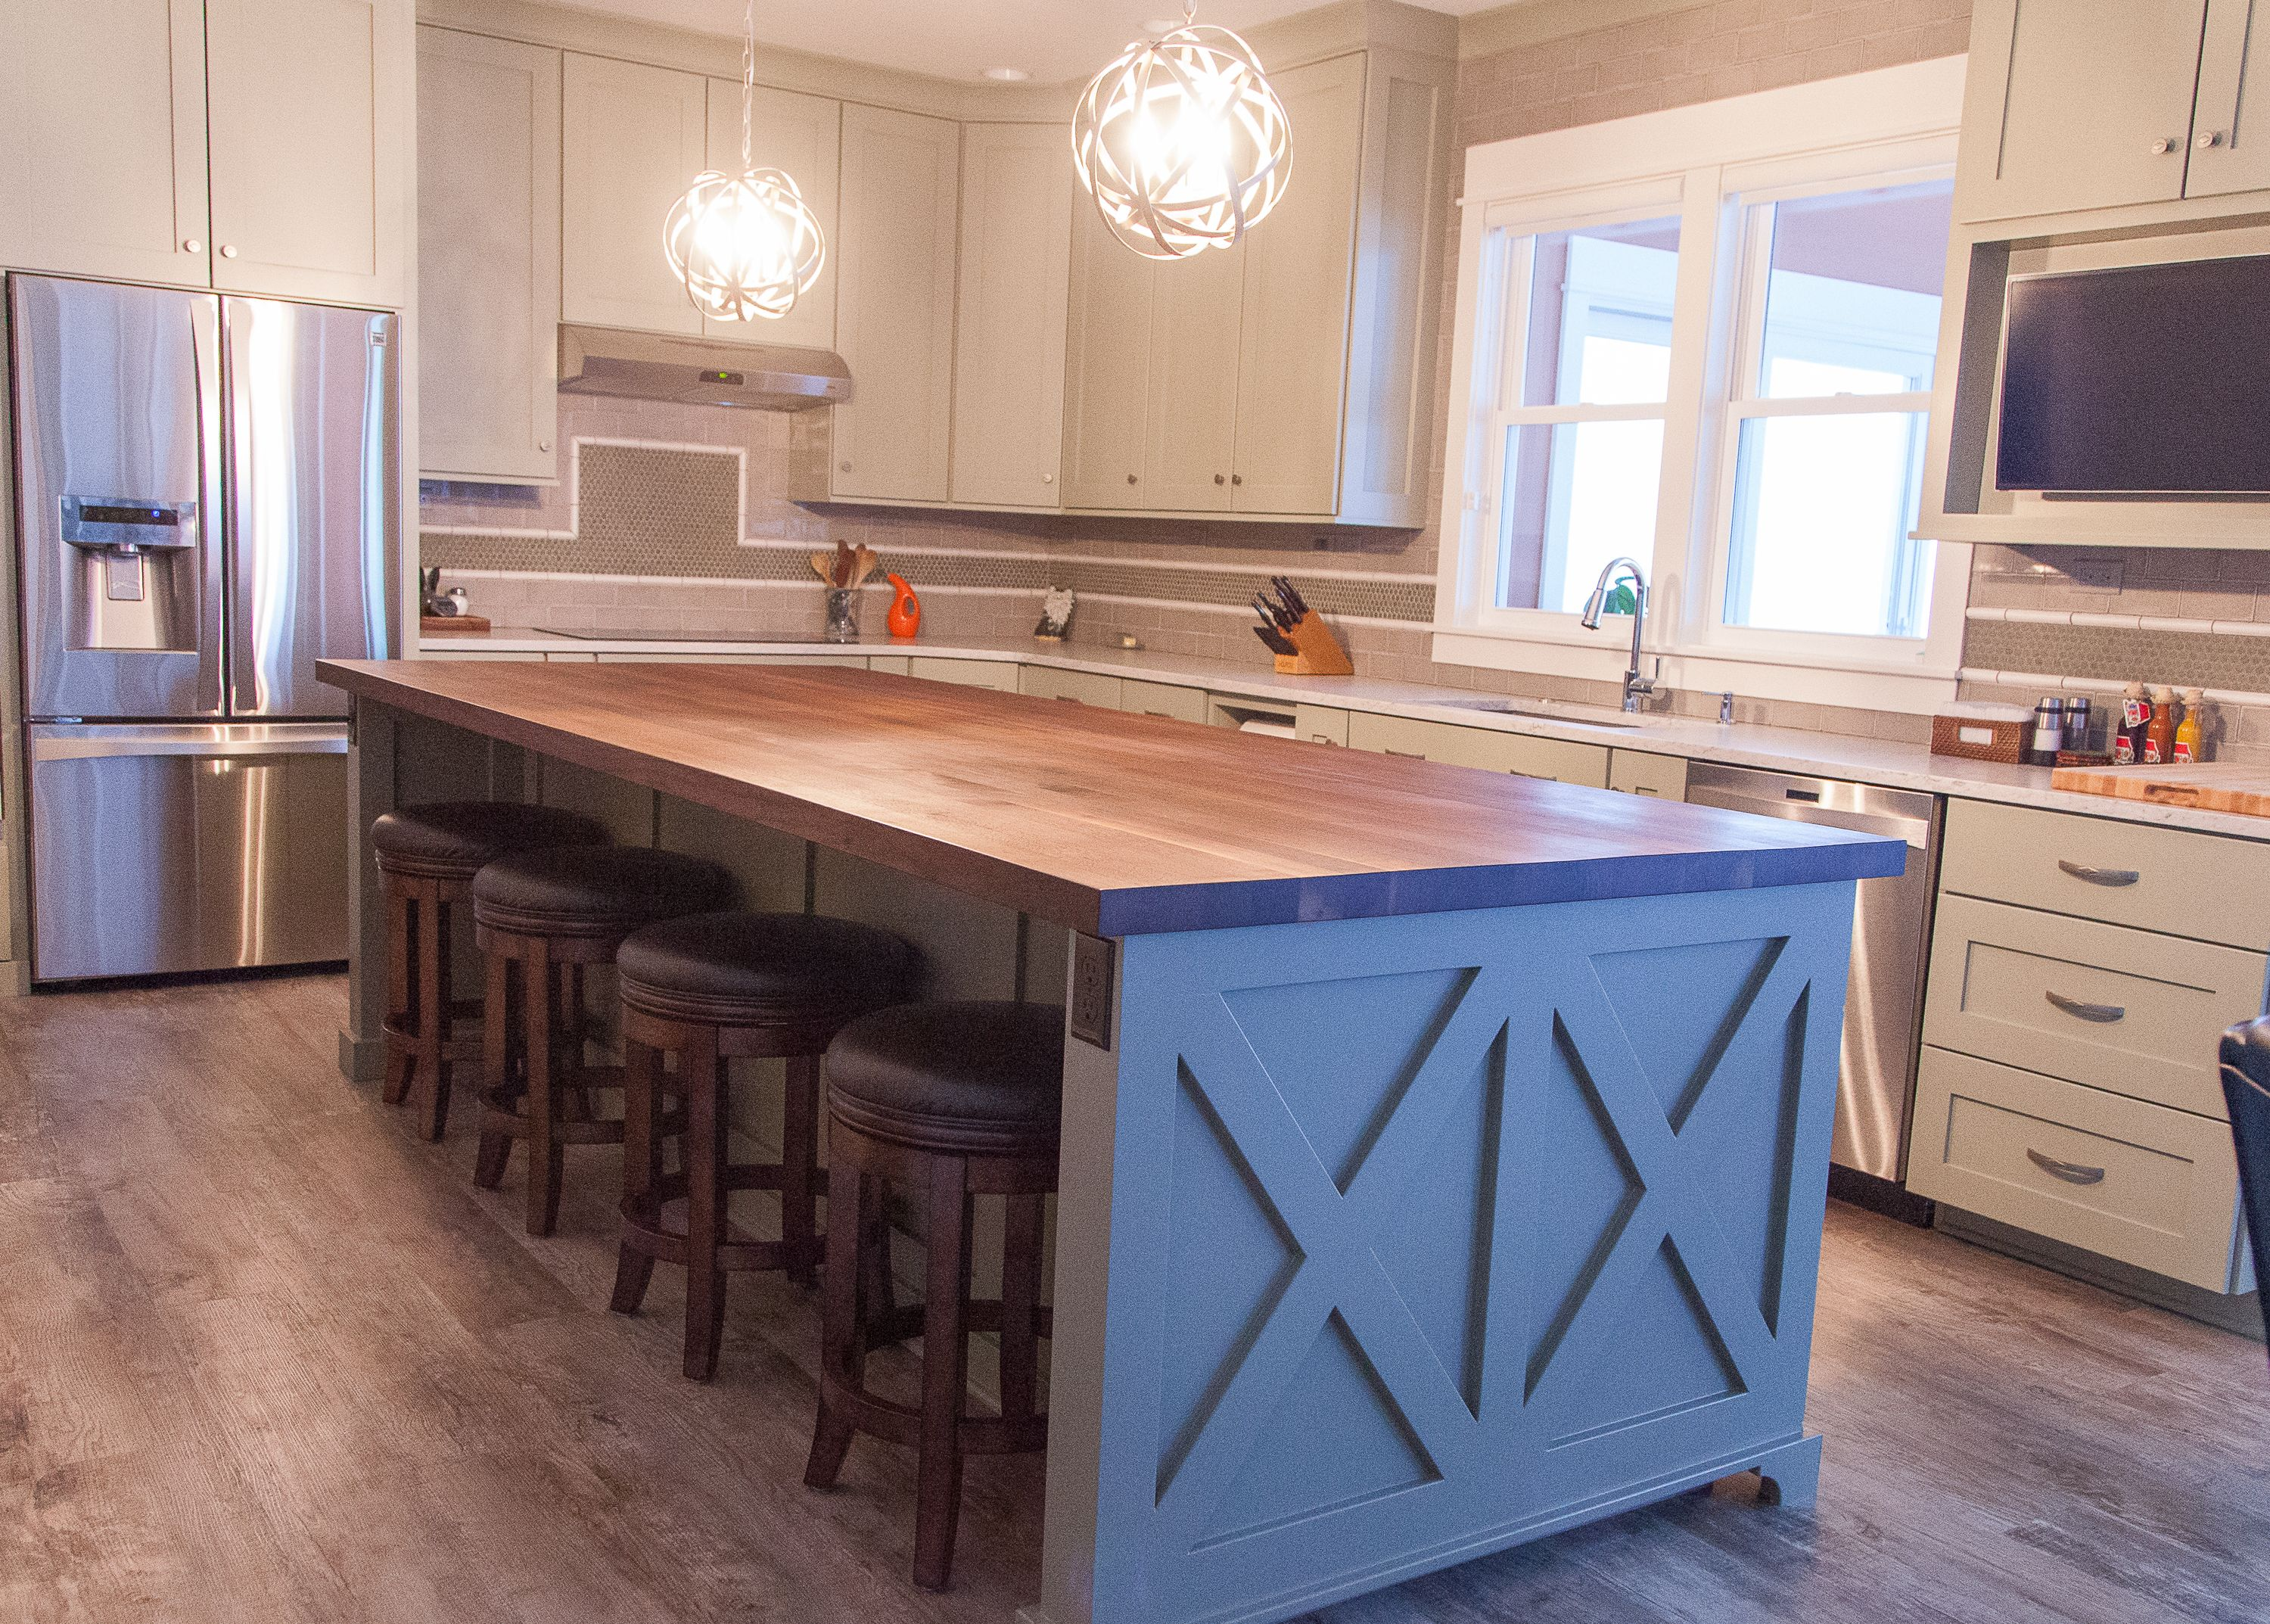 Kitchen Island Butcher Block Tops Farmhouse Chic Sleek Walnut Butcher Block Countertop Barn Wood